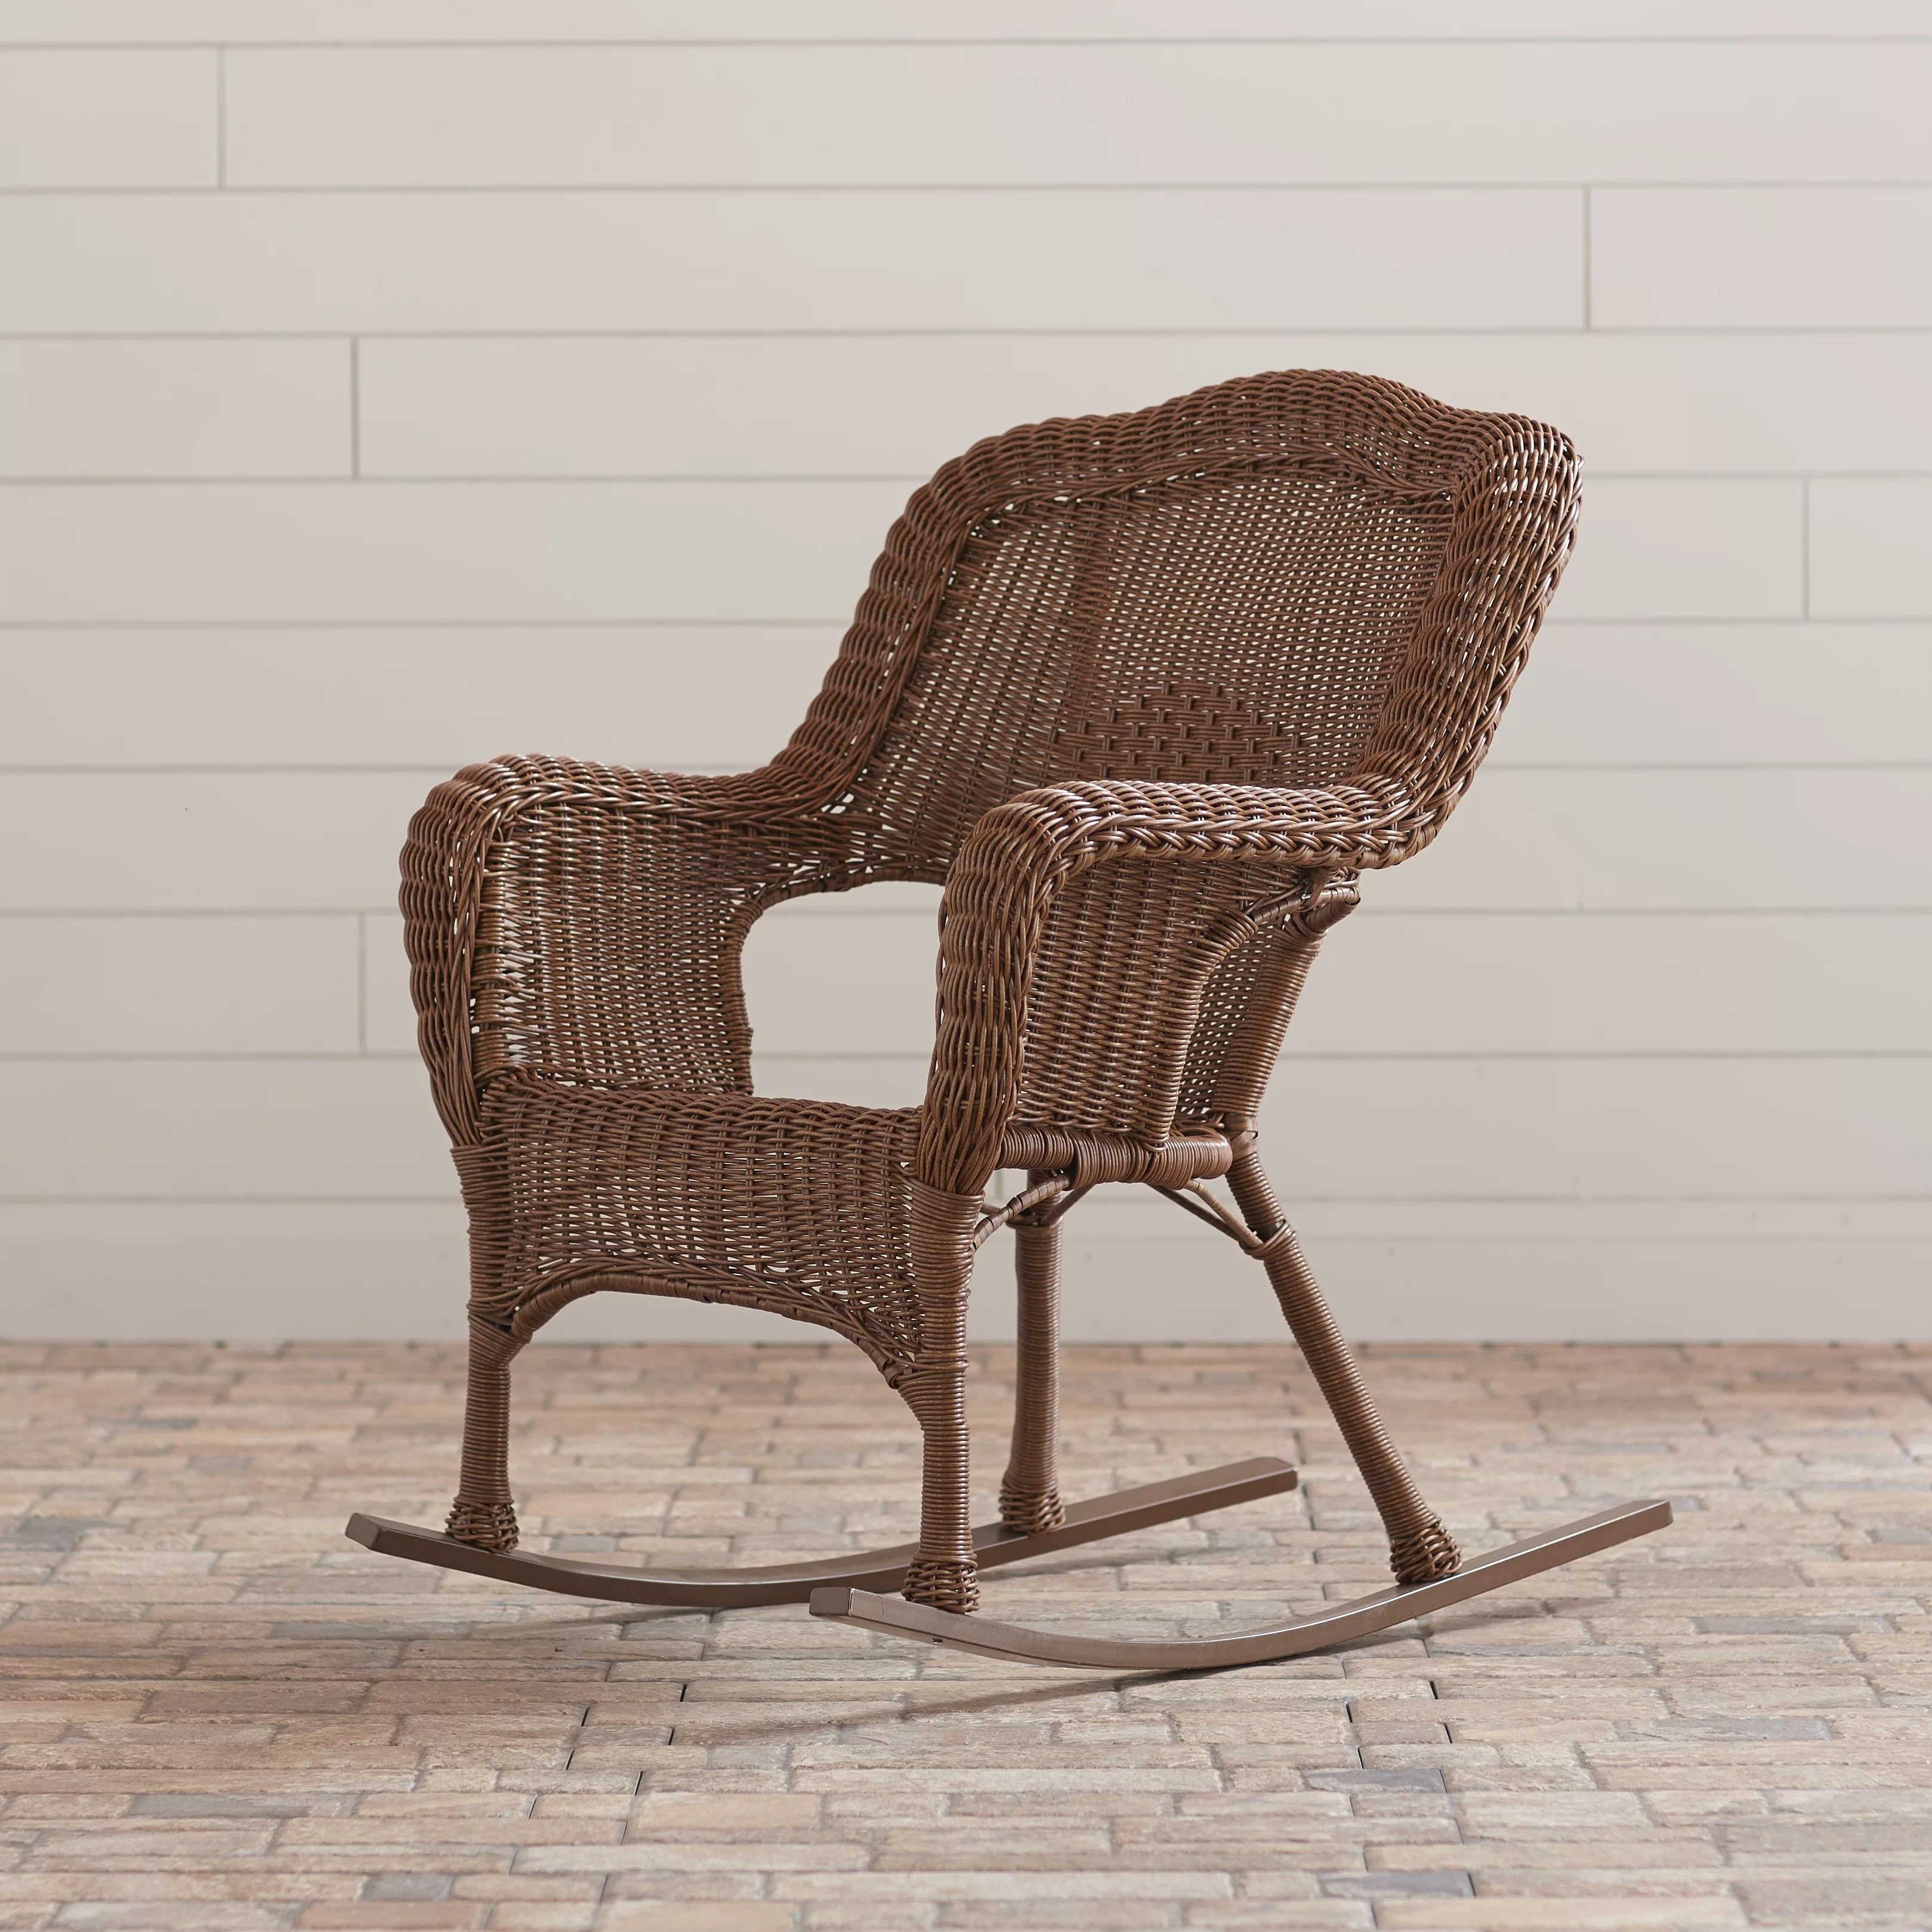 Wicker Rocking Chair Narron Wicker Resin Outdoor Rocking Chair